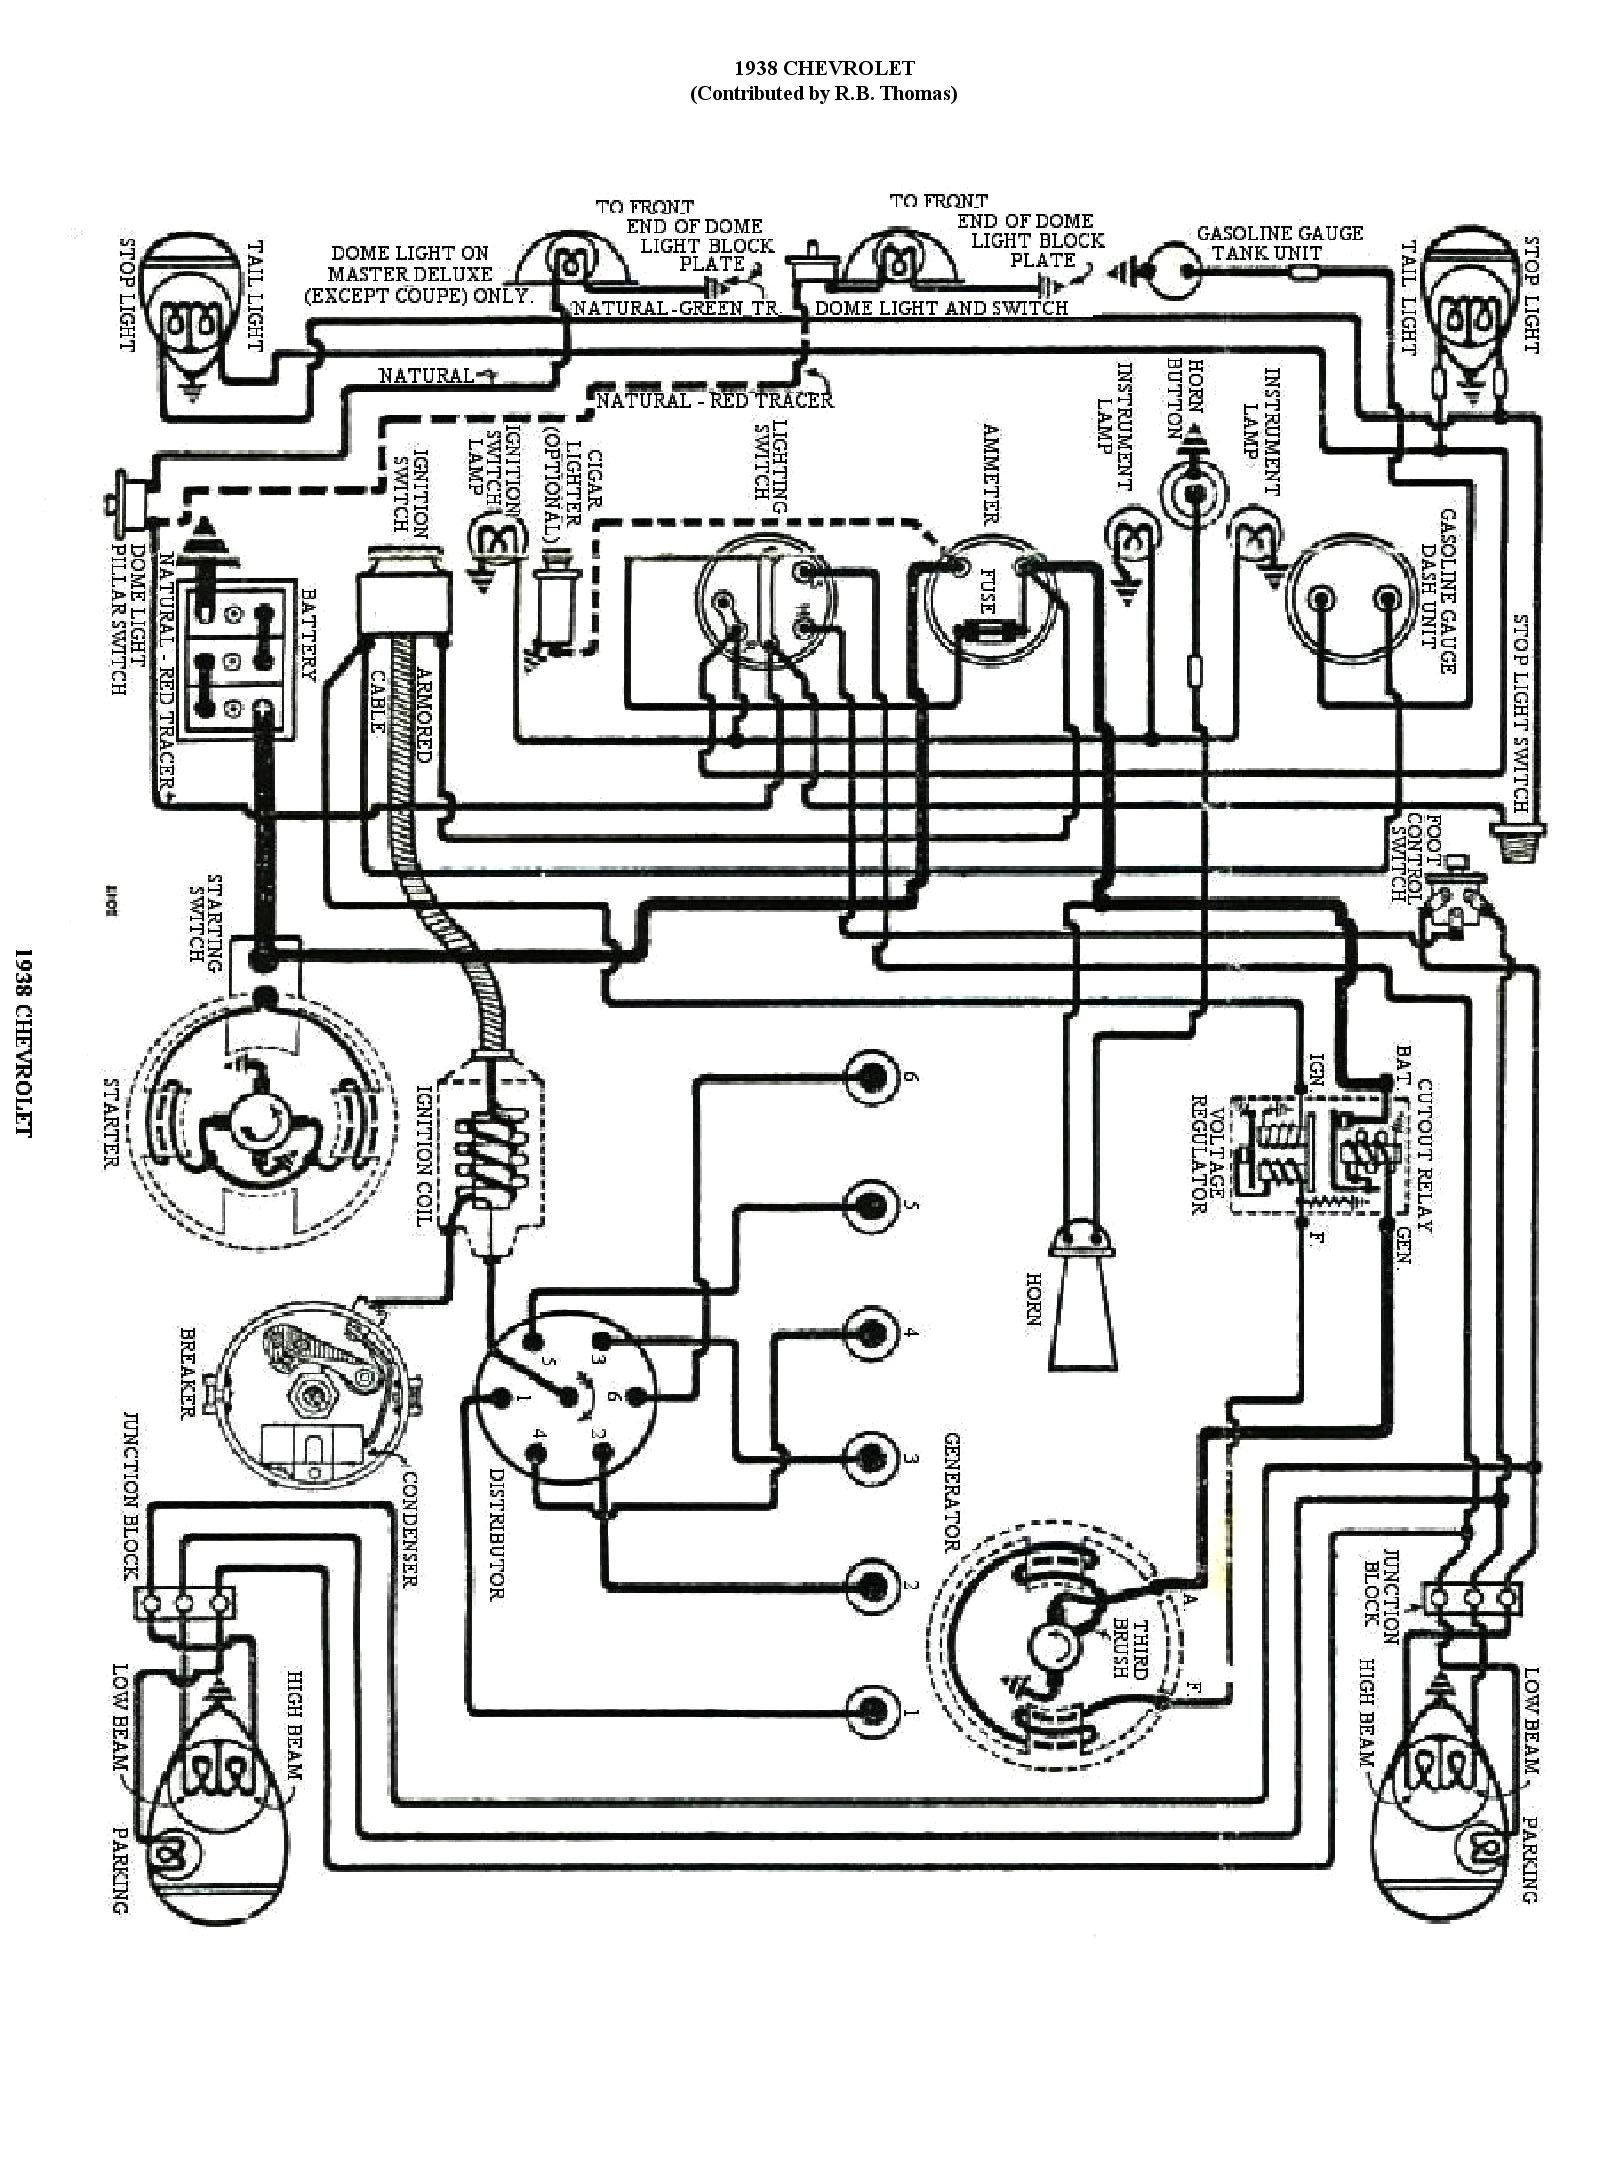 38wiring chevy wiring diagrams ac wiring harness at reclaimingppi.co